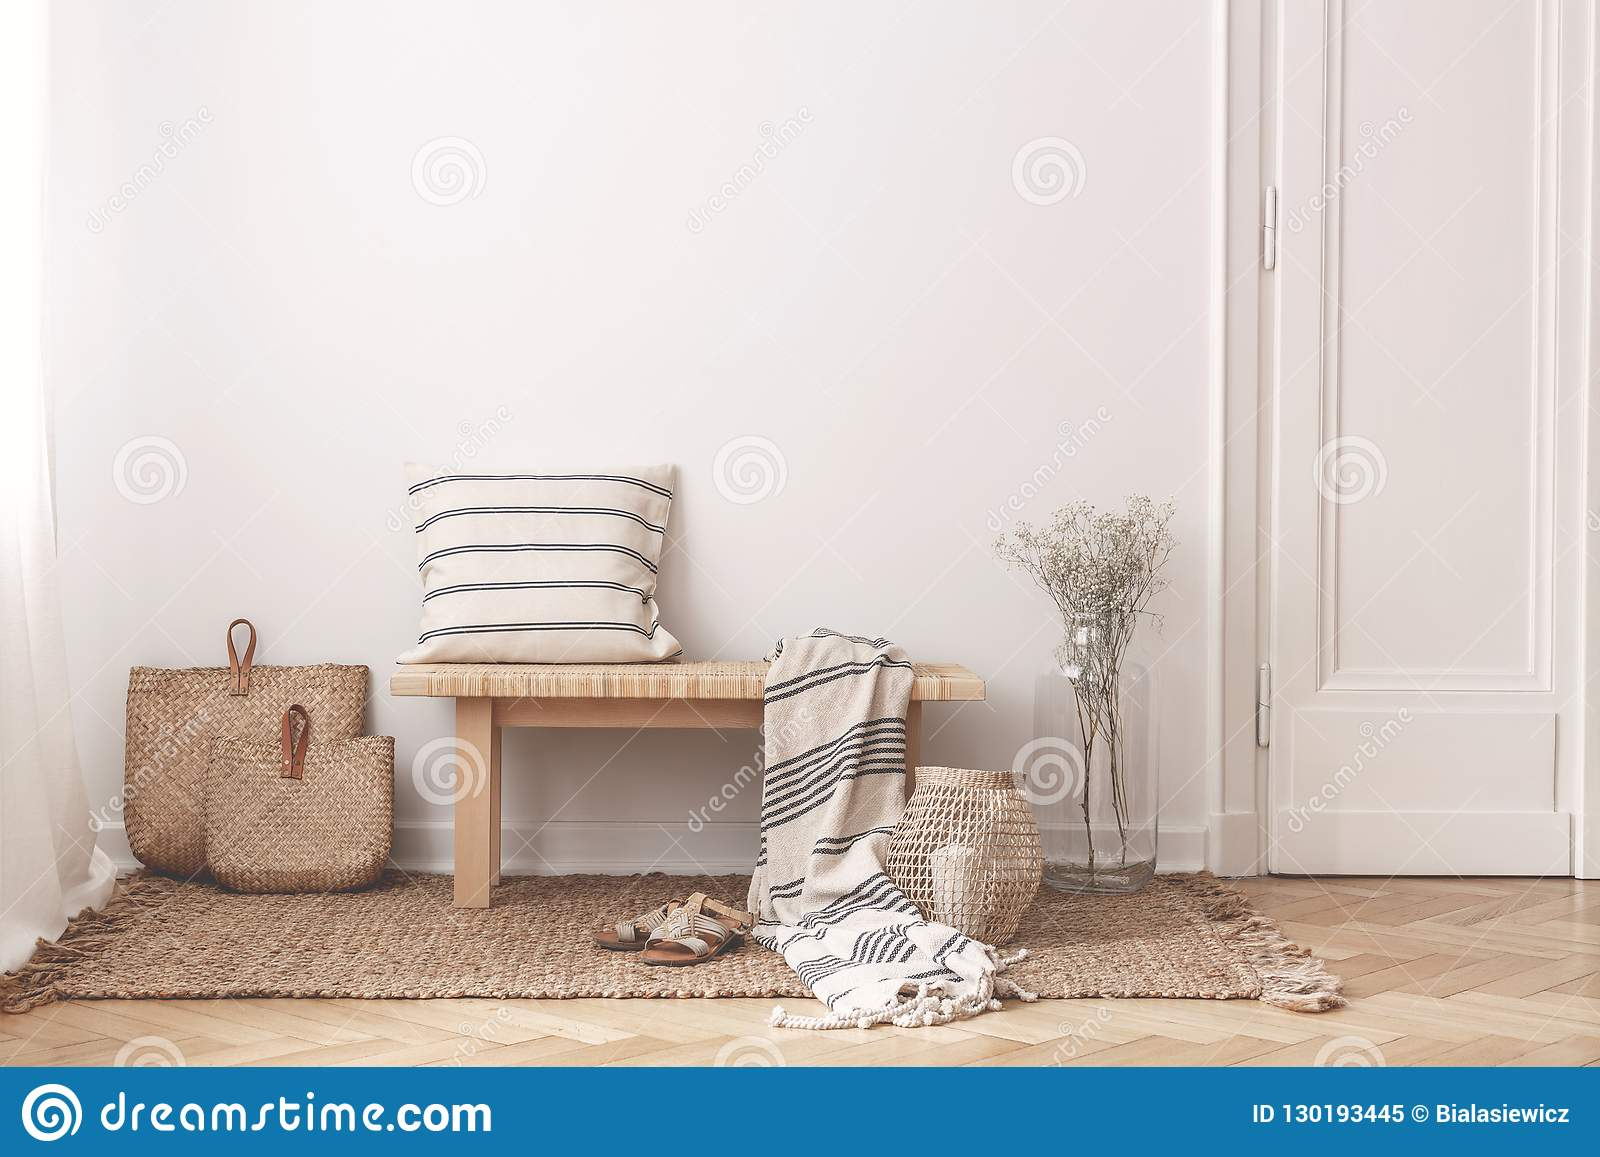 Two bags made of straw next to wooden table with striped pillow